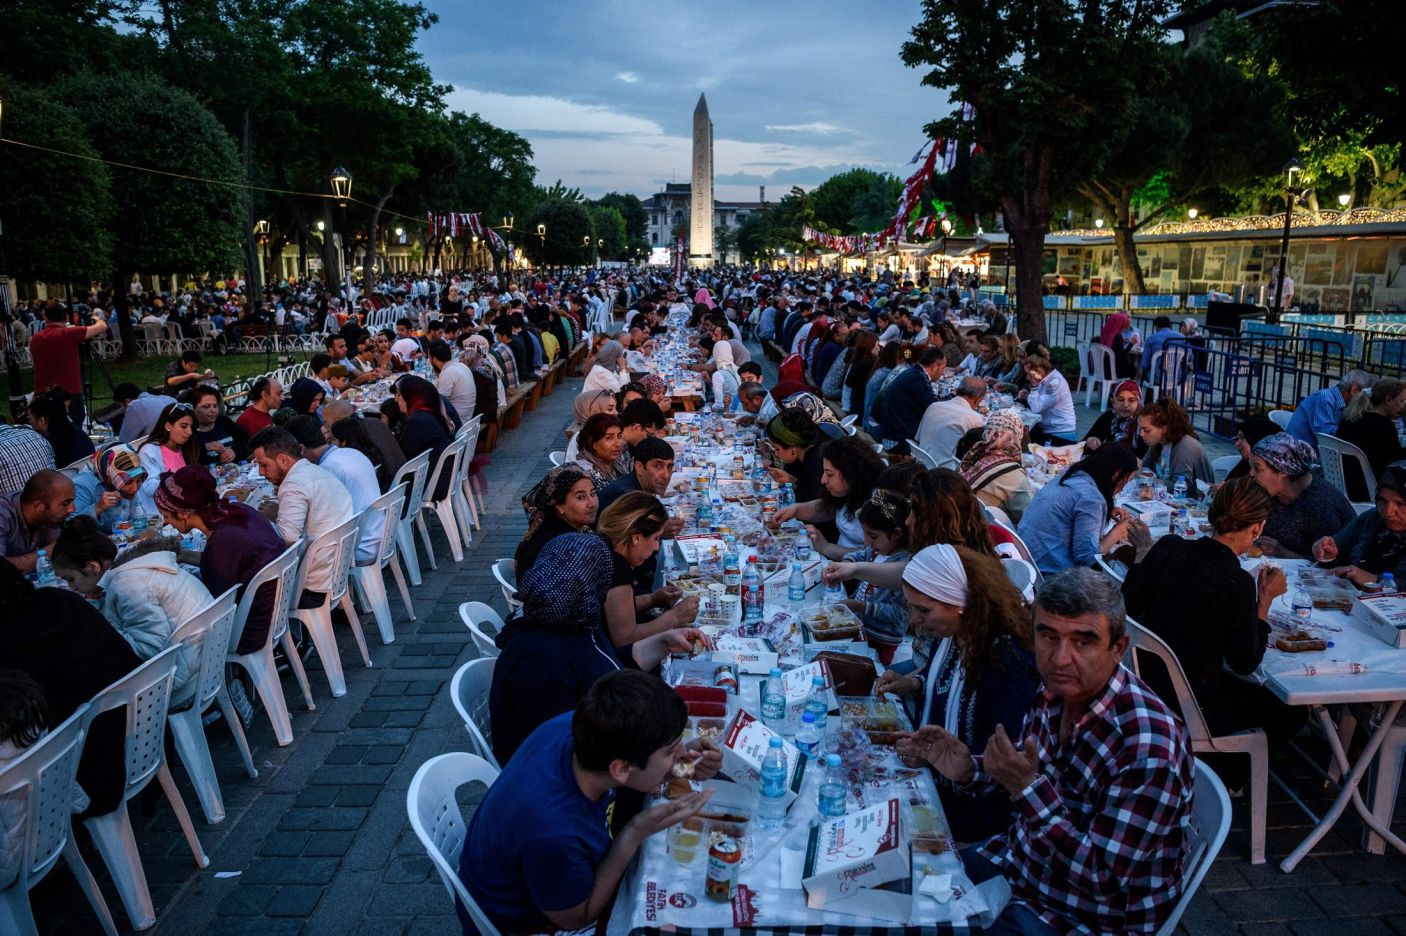 Thousands of Turkish people break their fasting at the Blue Mosque square in Istanbul, during the first day of the holy month of Ramadan, on June 6, 2016. Ozan Kose, AFP